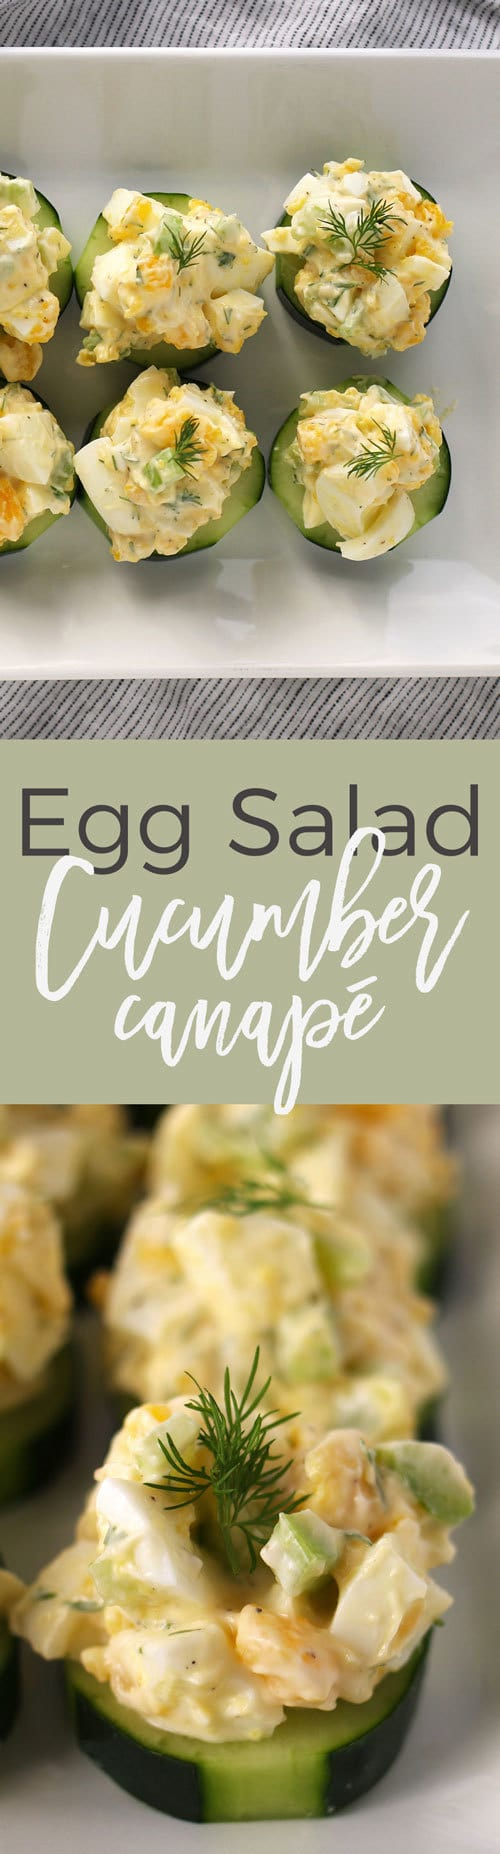 This egg salad cucumber canapé recipe is perfect appetizer for Easter and Mother's Day brunches. It is gluten-free and dairy-free and can be made in just 10 minutes.